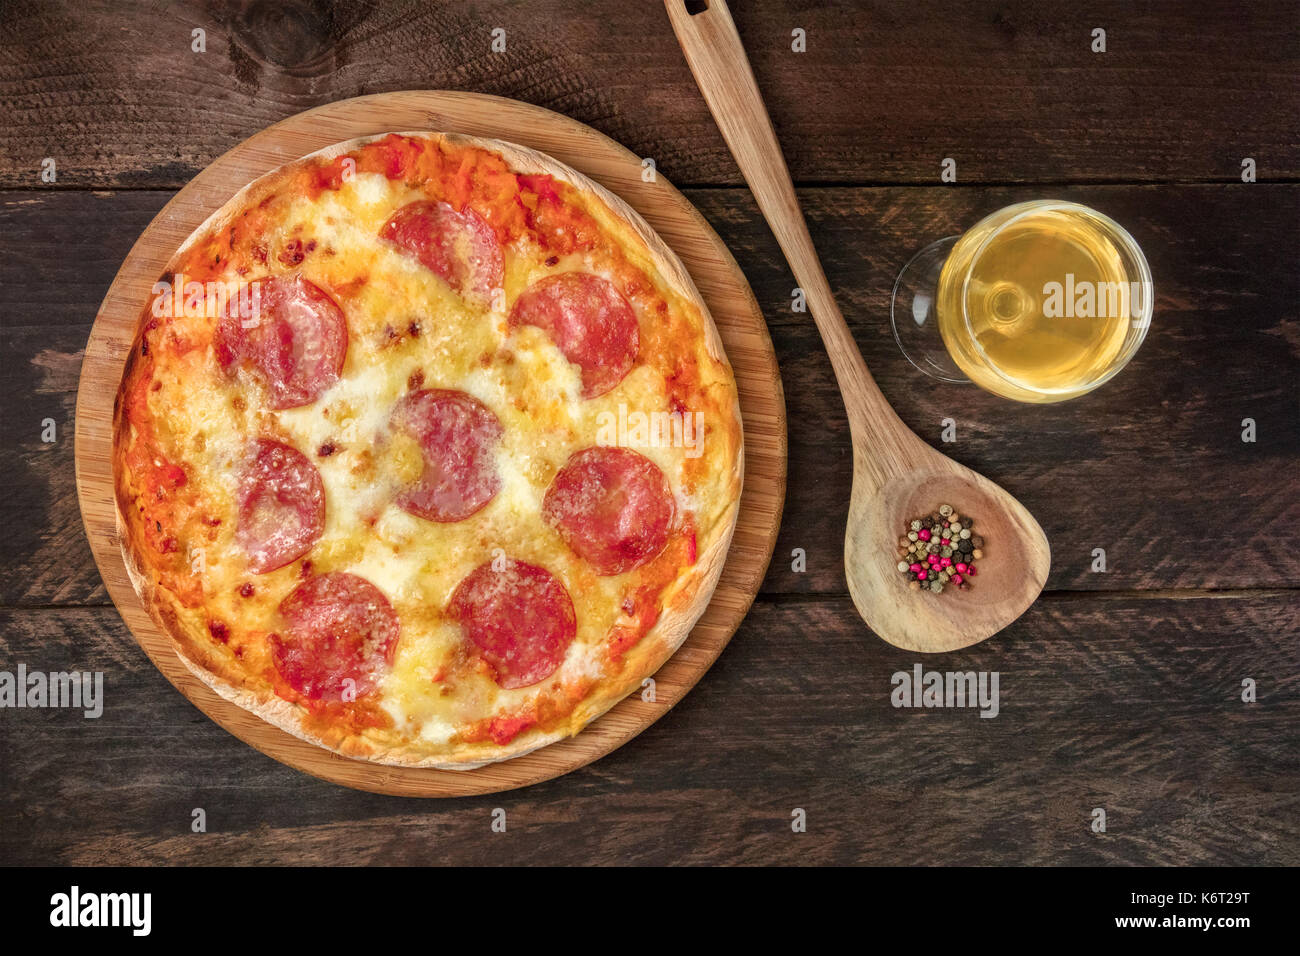 Pizza au pepperoni, avec du vin blanc, du poivre, et copyspace Photo Stock